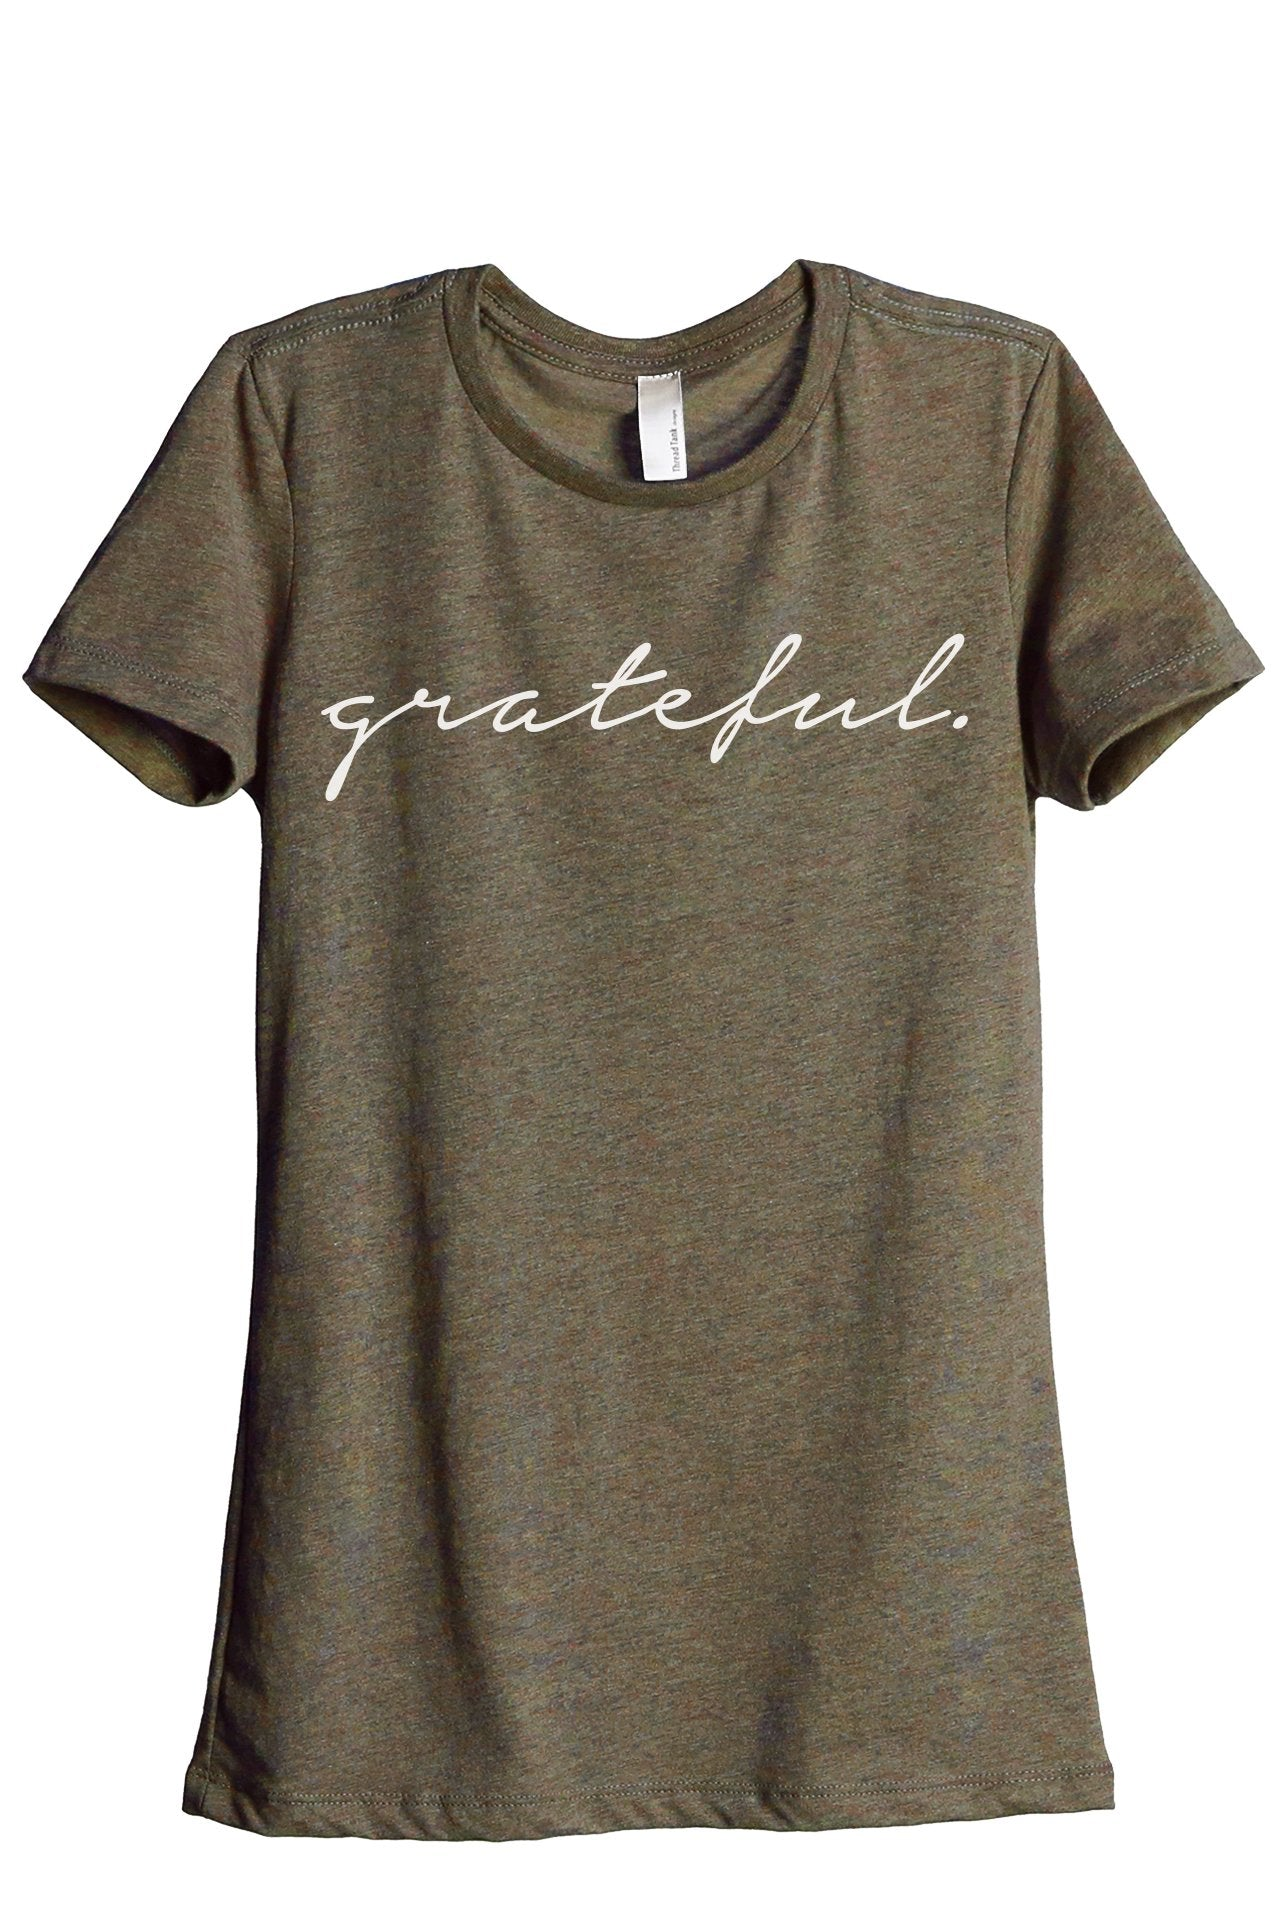 Grateful Women's Relaxed Crewneck T-Shirt Top Tee Heather Sage